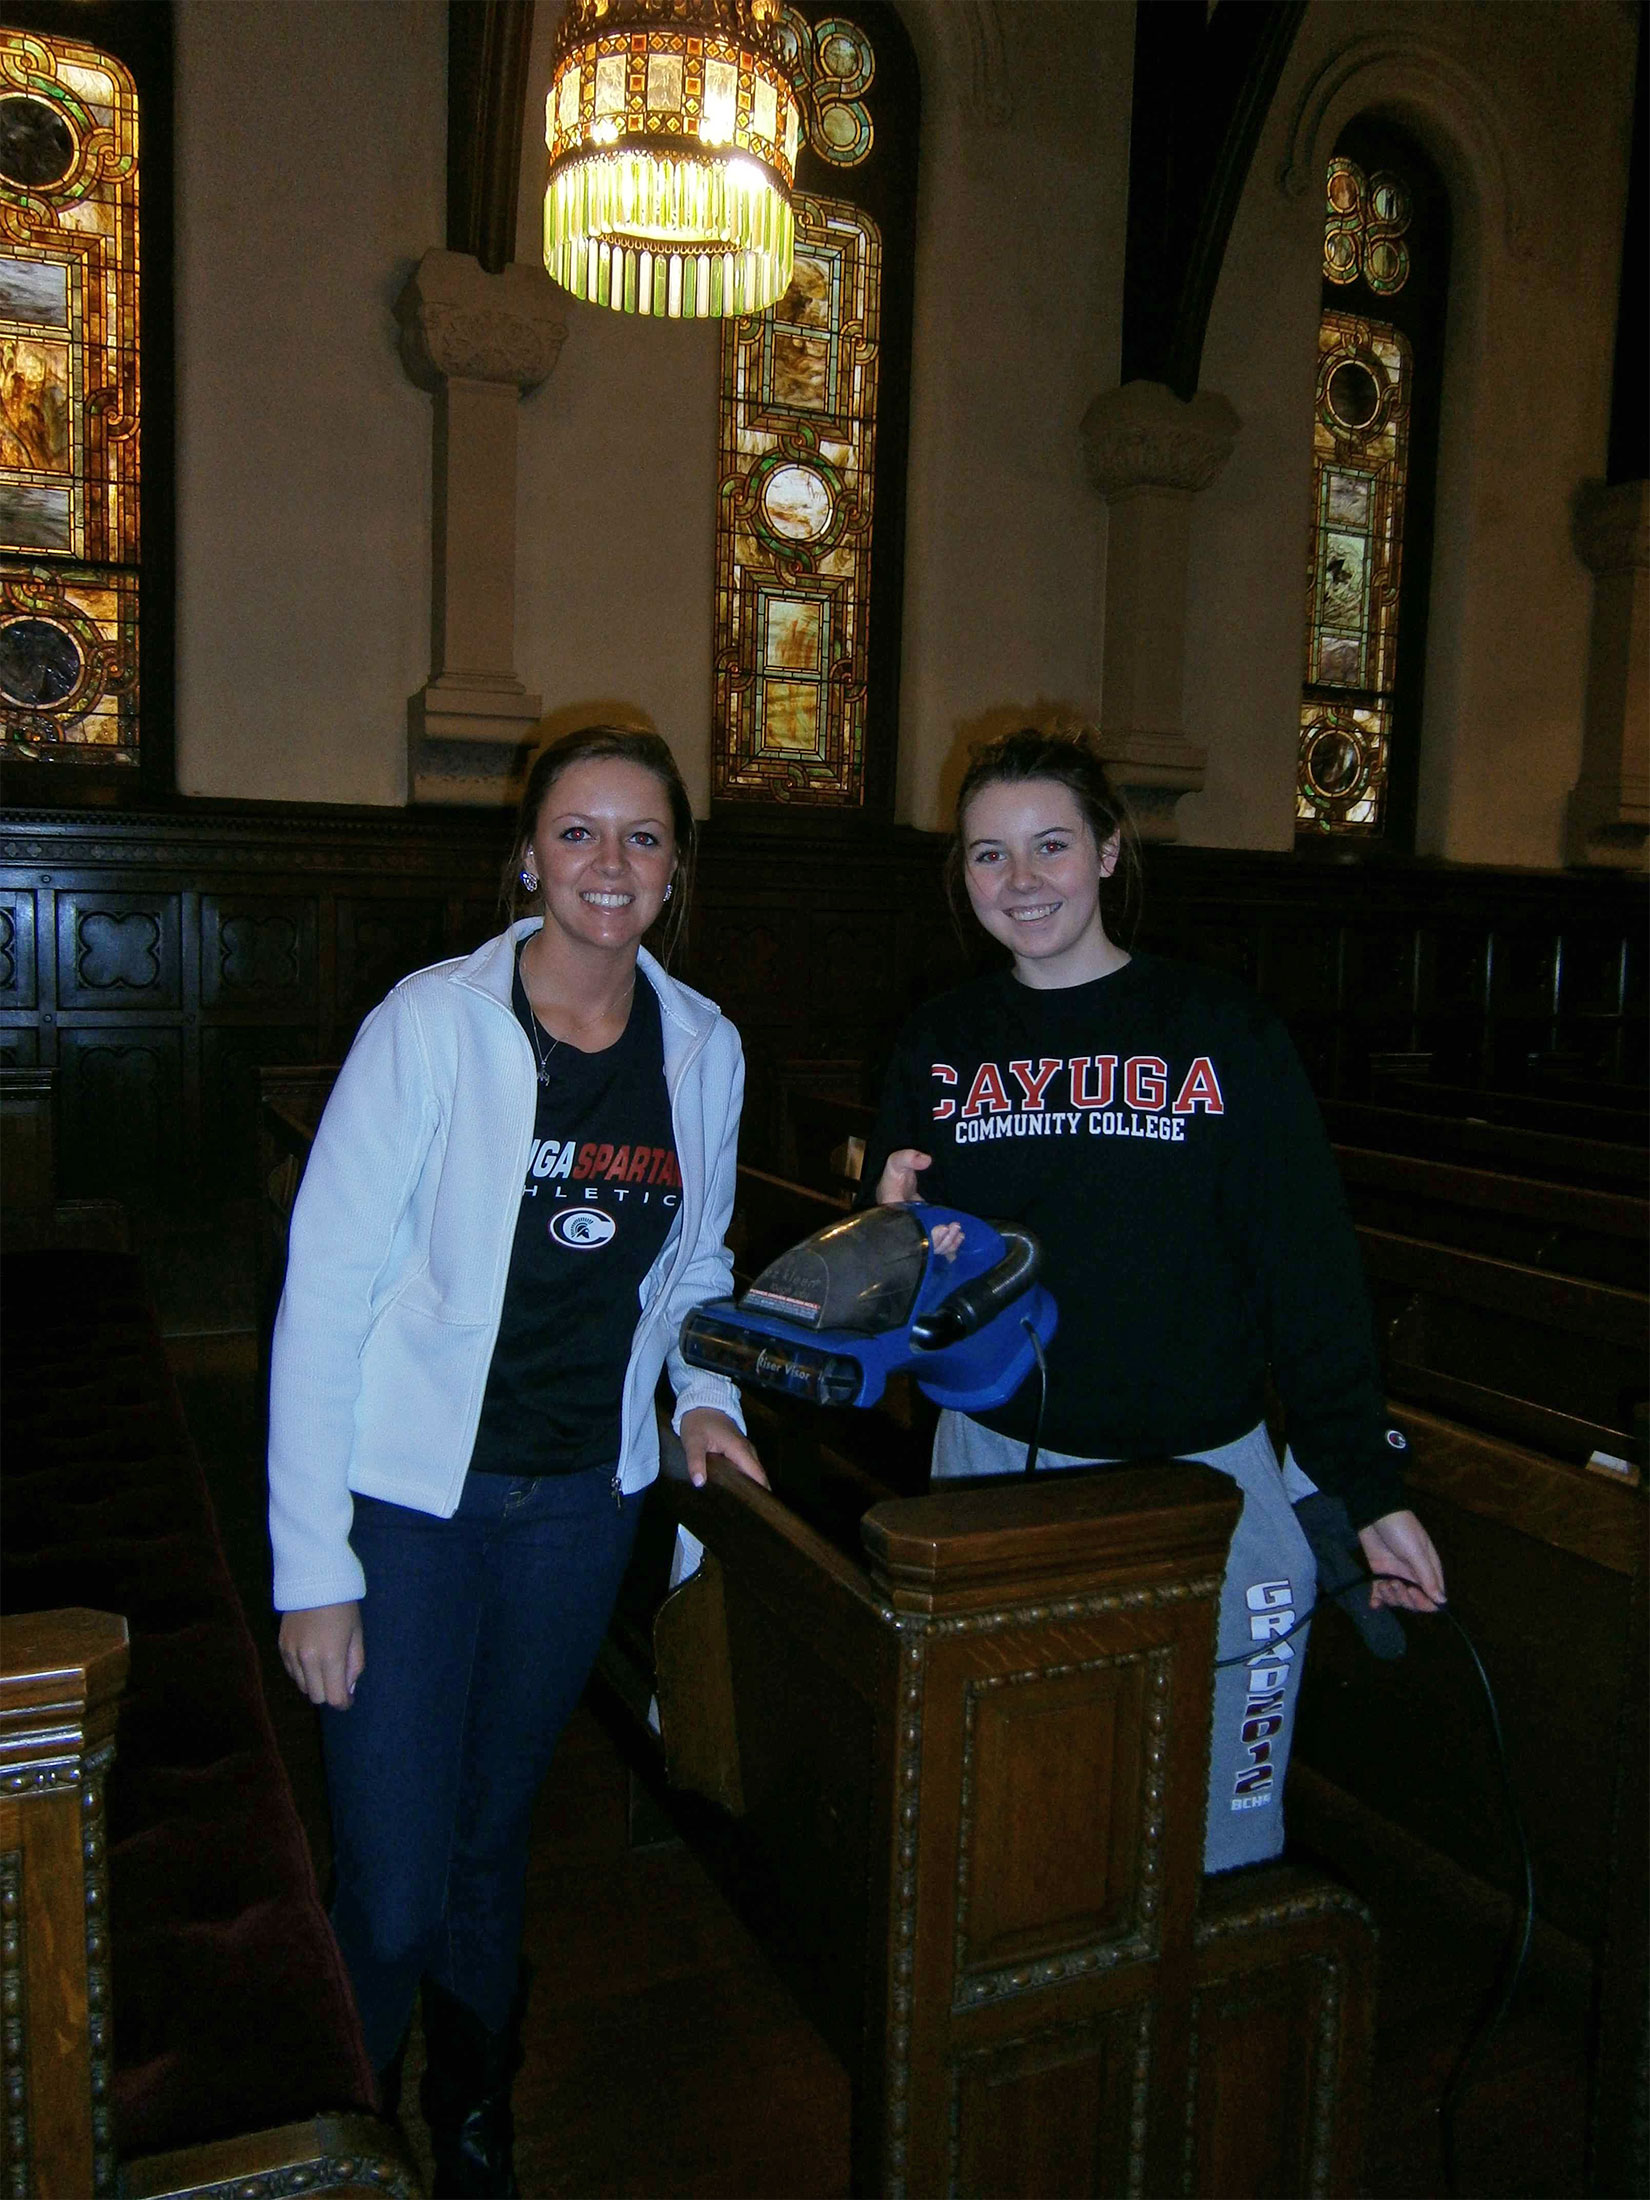 Cayuga Community College volleyball girls shown cleaning a neighborhood chapel.